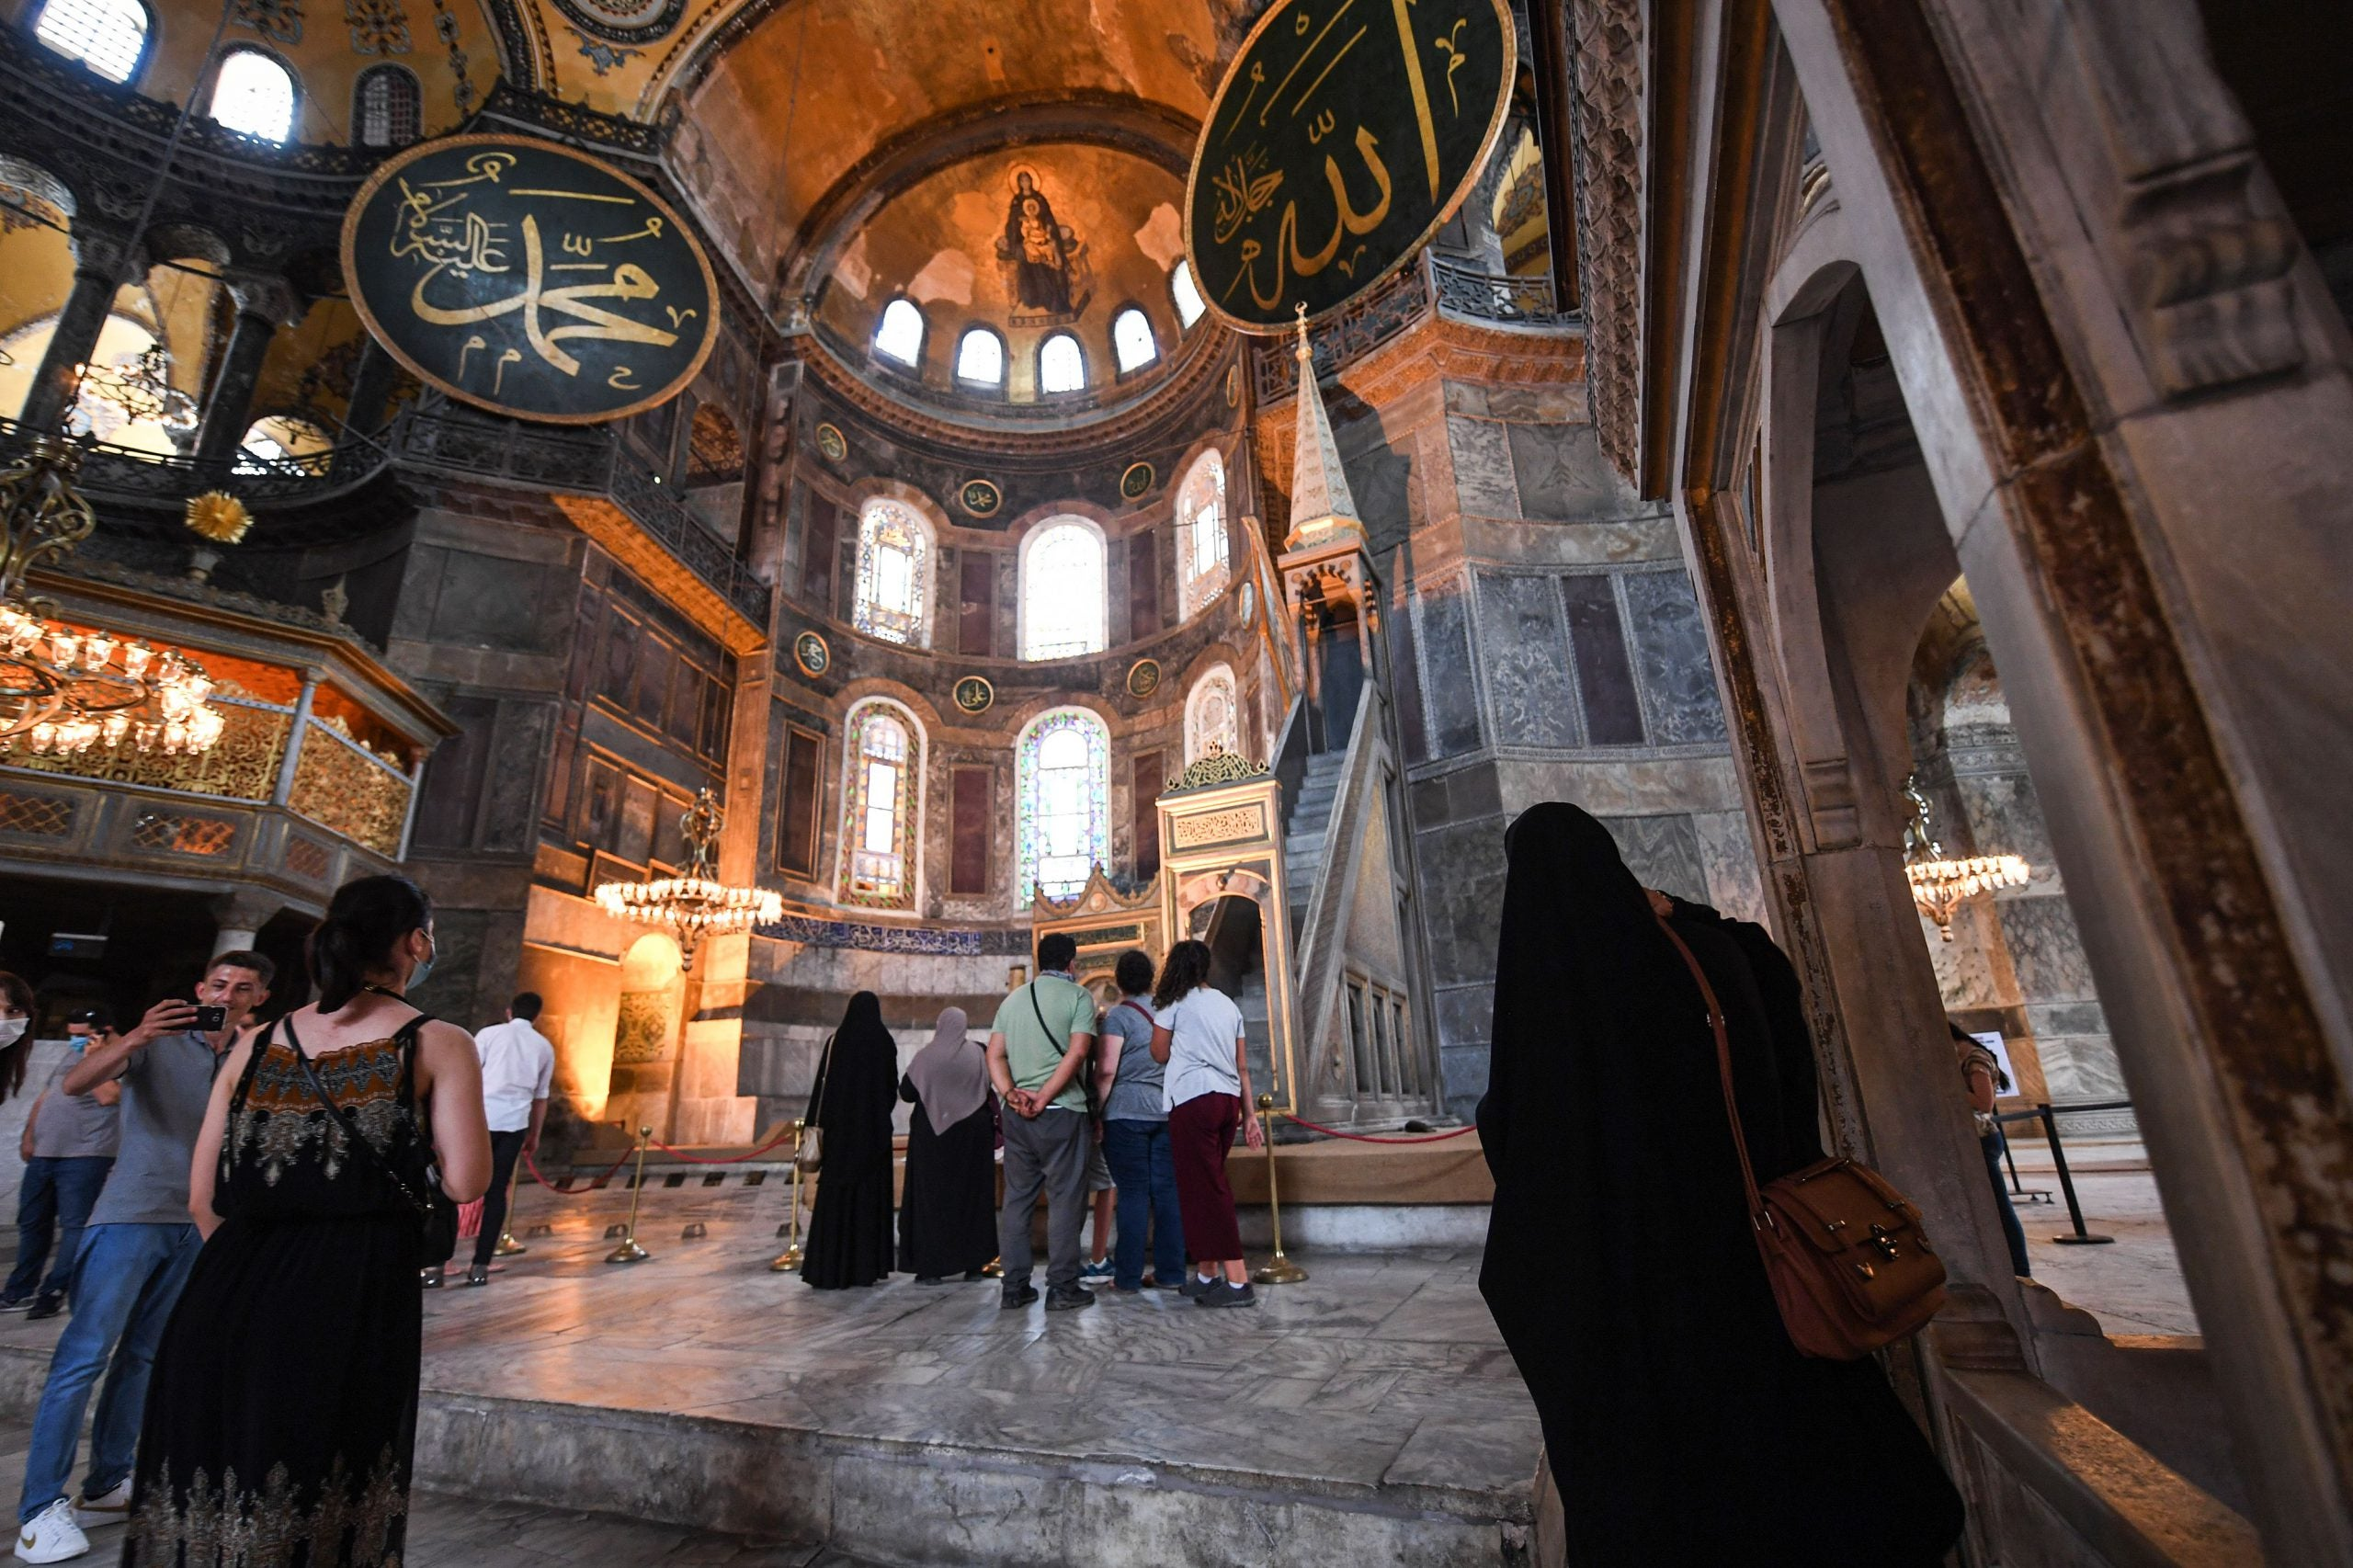 Erasing histories: why Turkey's Hagia Sophia should remain a museum